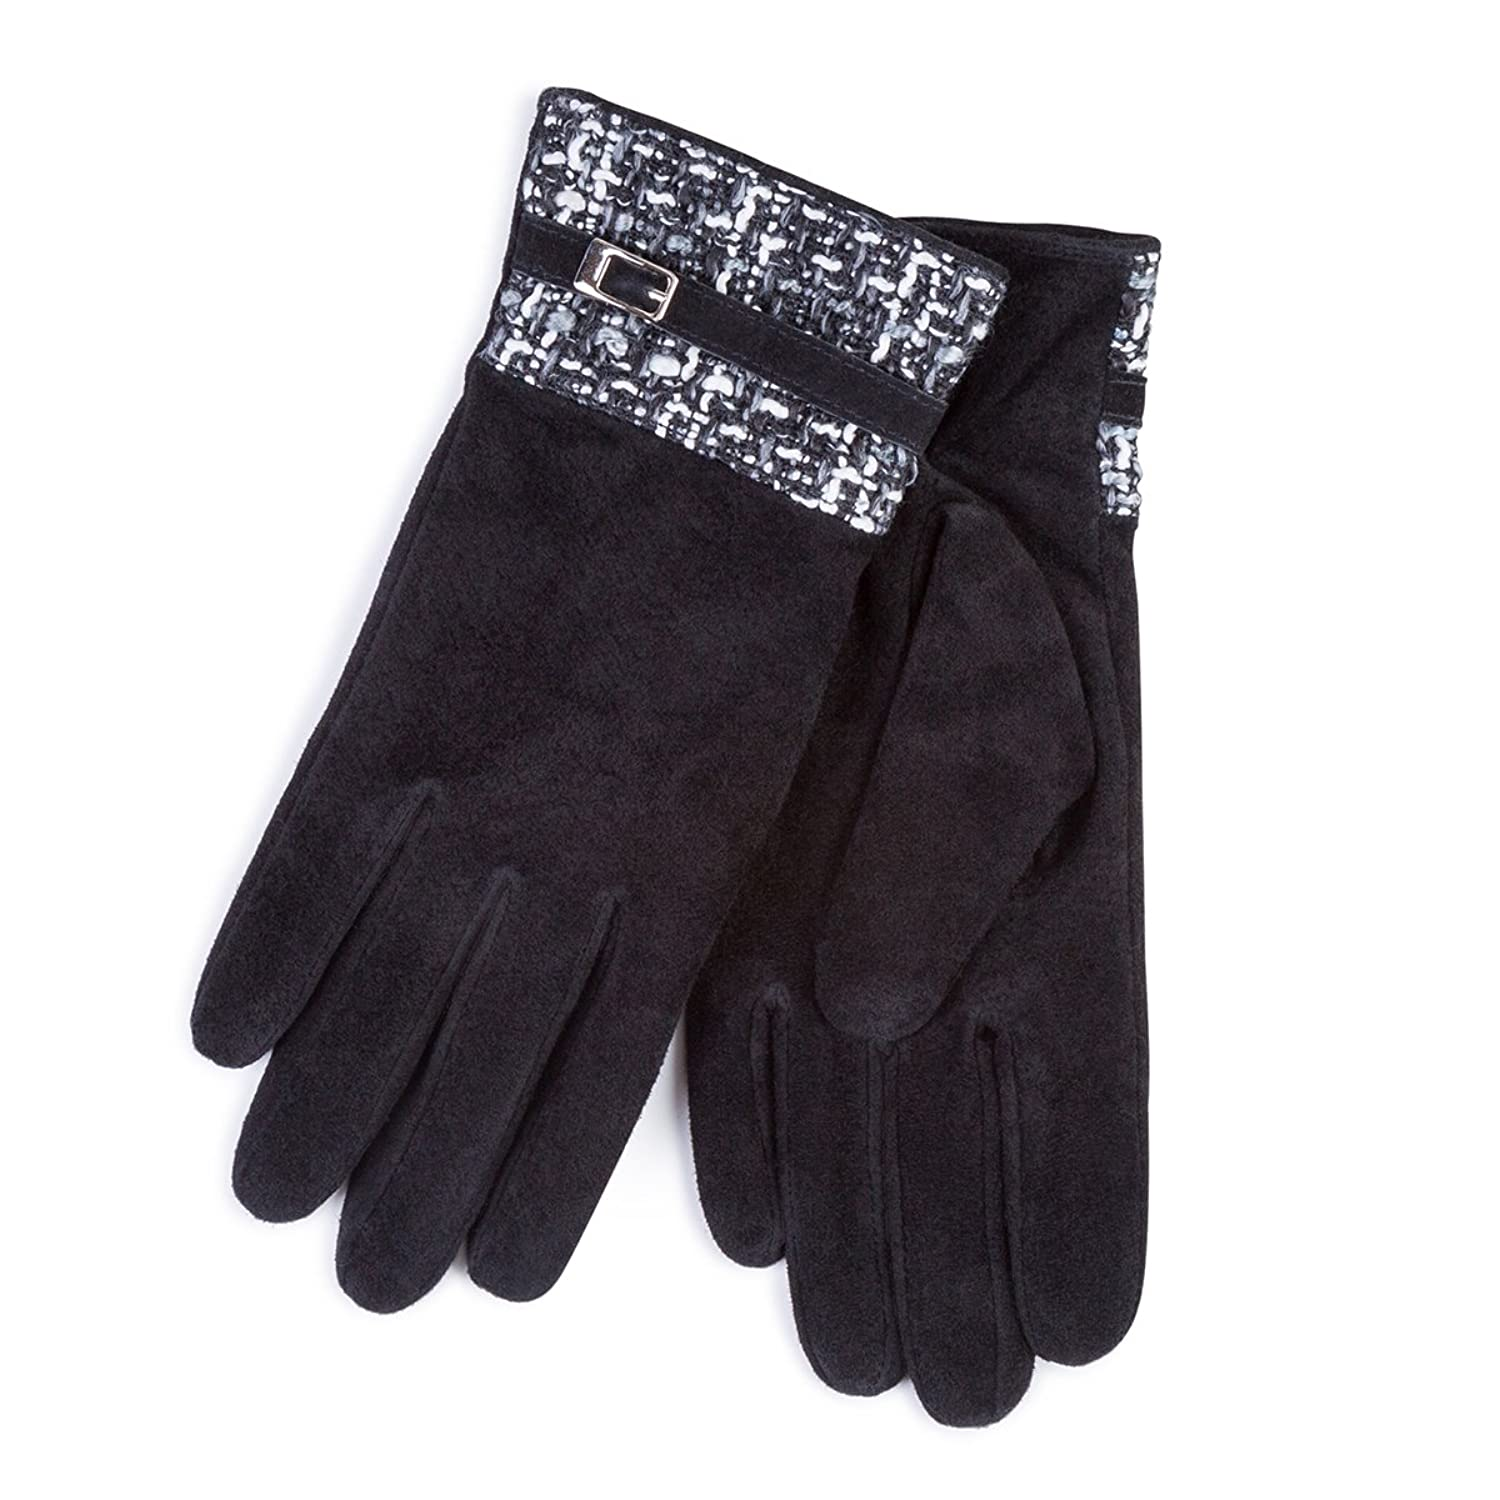 New Stylish Womens Leopard Bow Gloves Ladies Winter Gloves Free UK Delivery